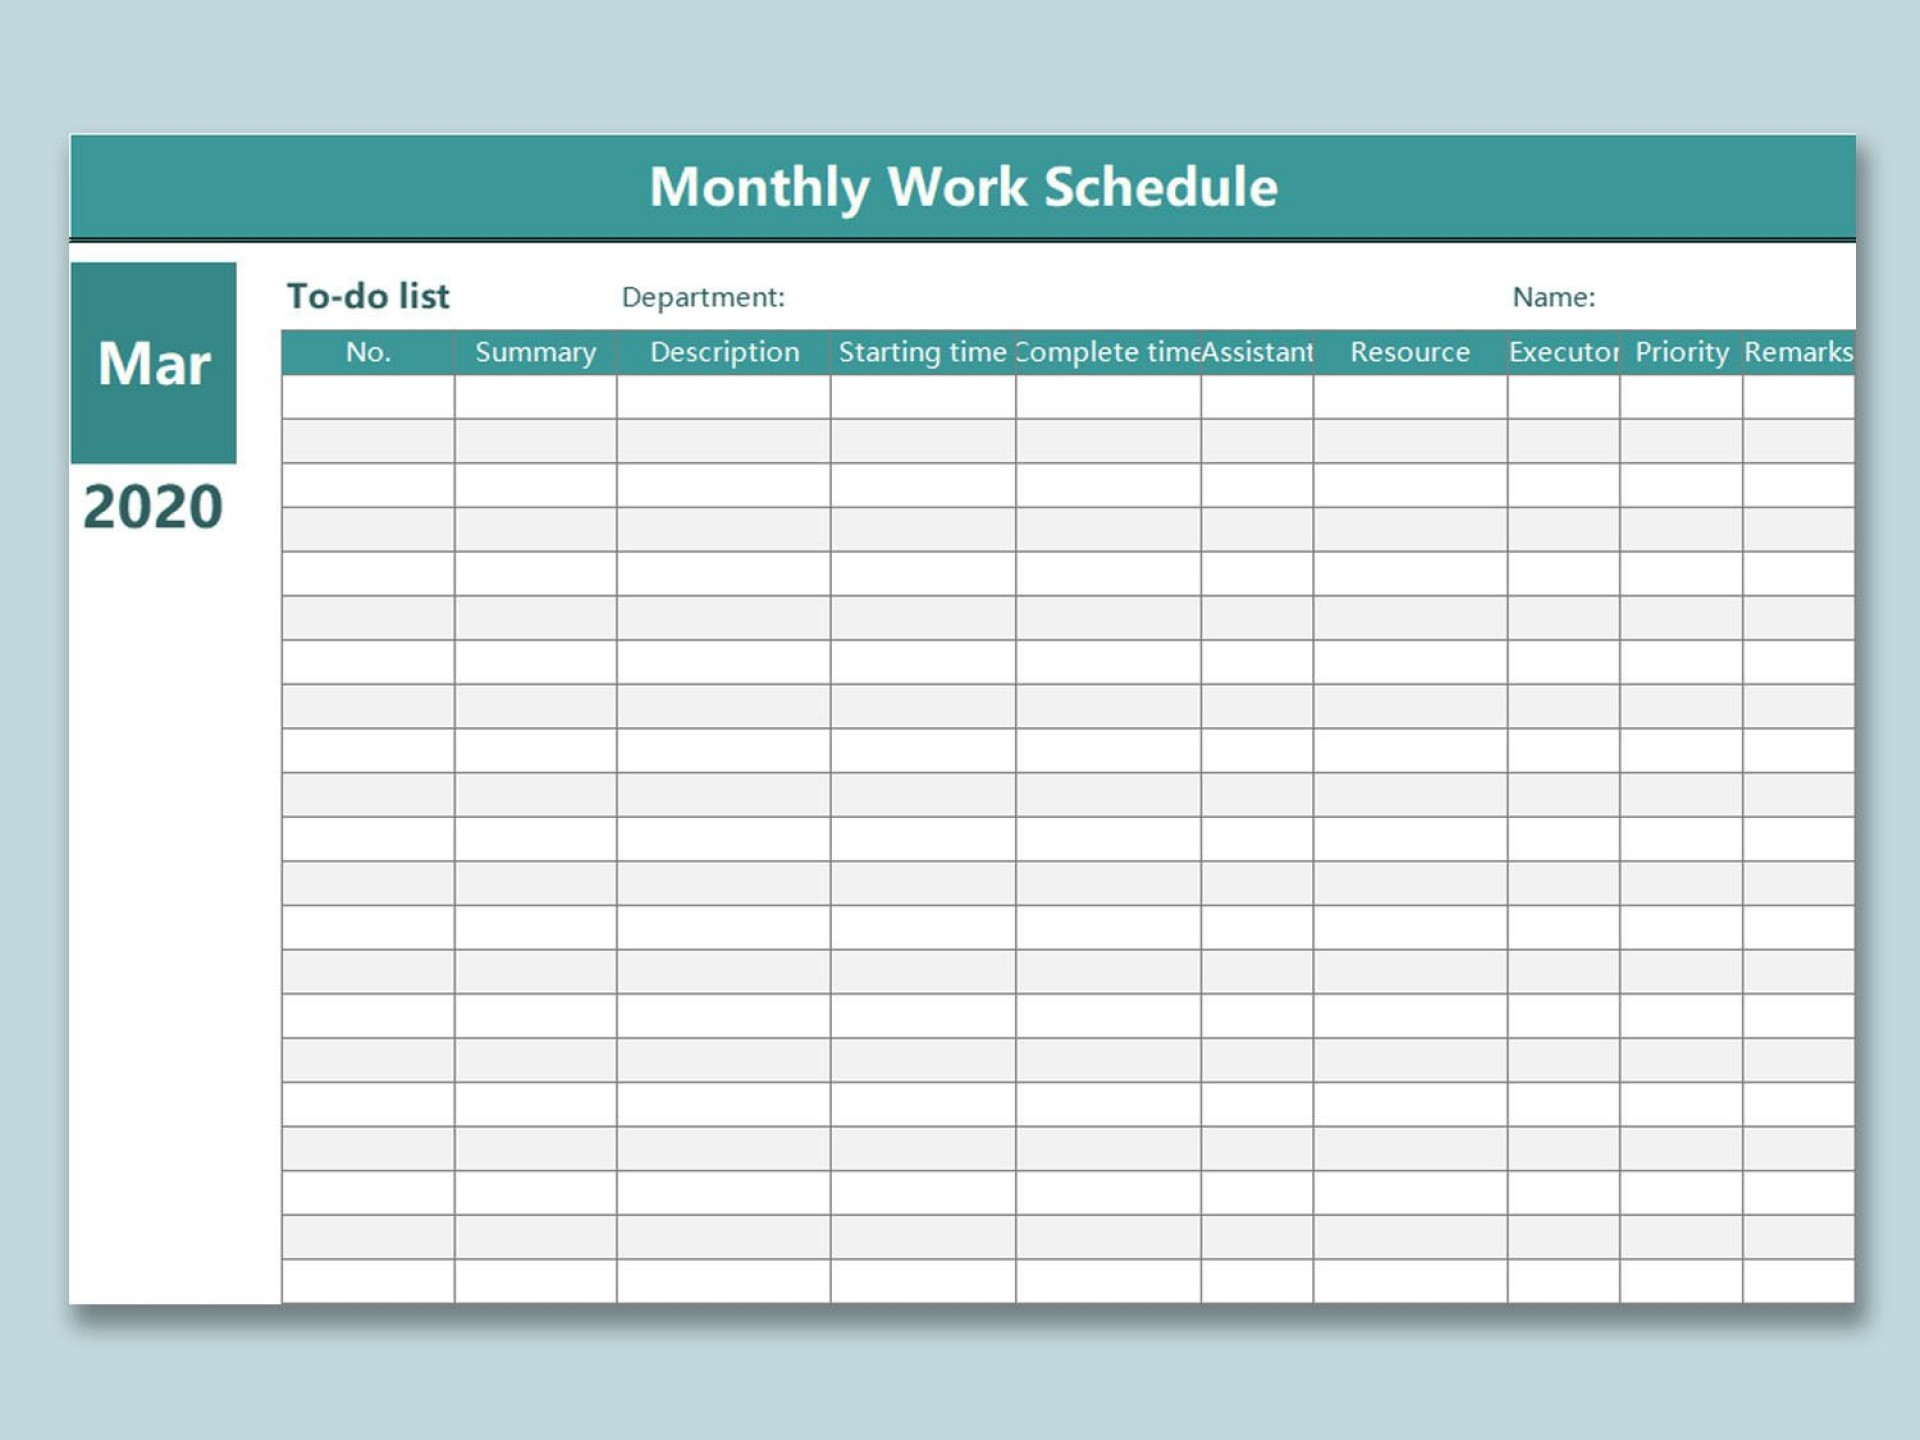 004 Phenomenal Monthly Work Calendar Template Excel Image  Employee Schedule Free1920